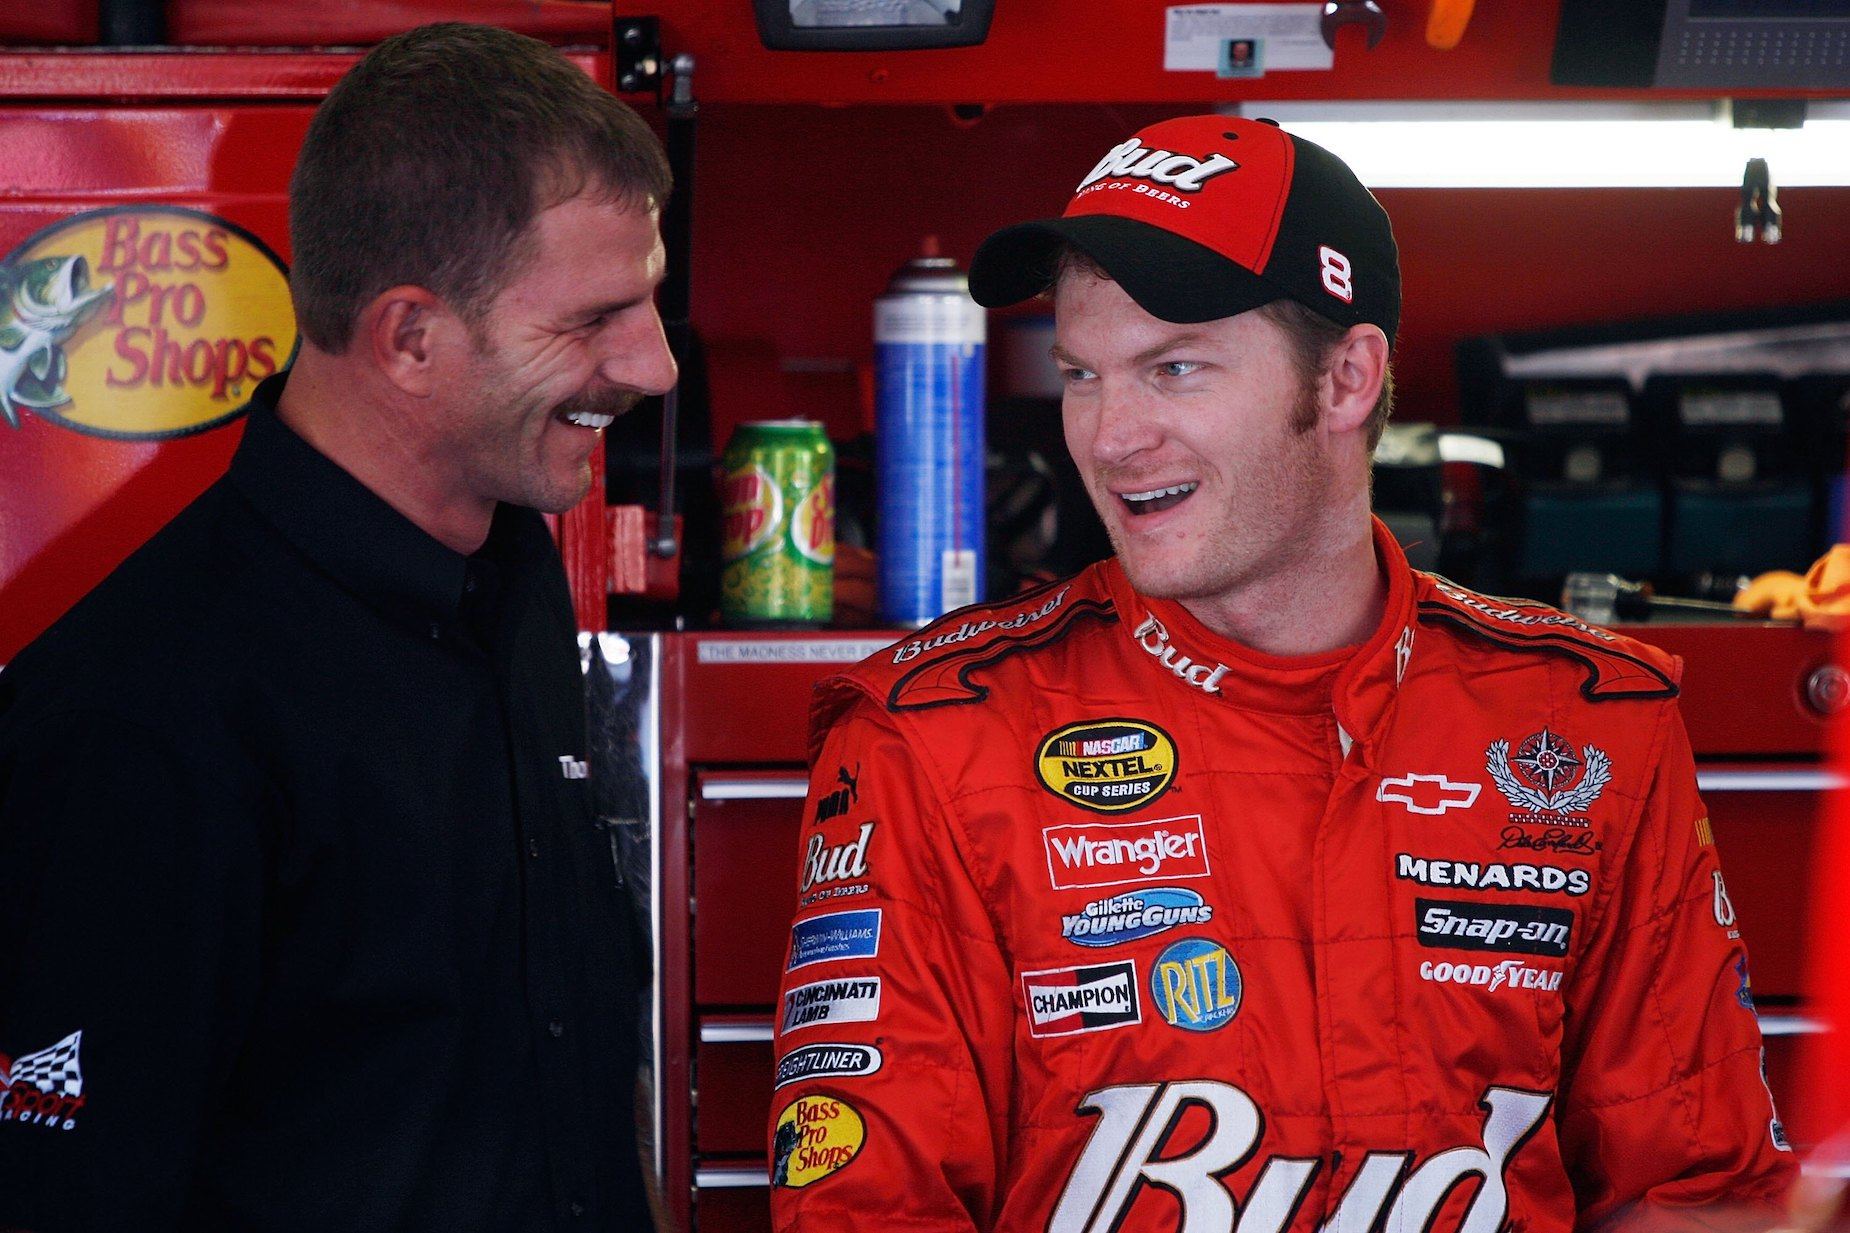 Brothers Kerry Earnhardt and Dale Earnhardt Jr.